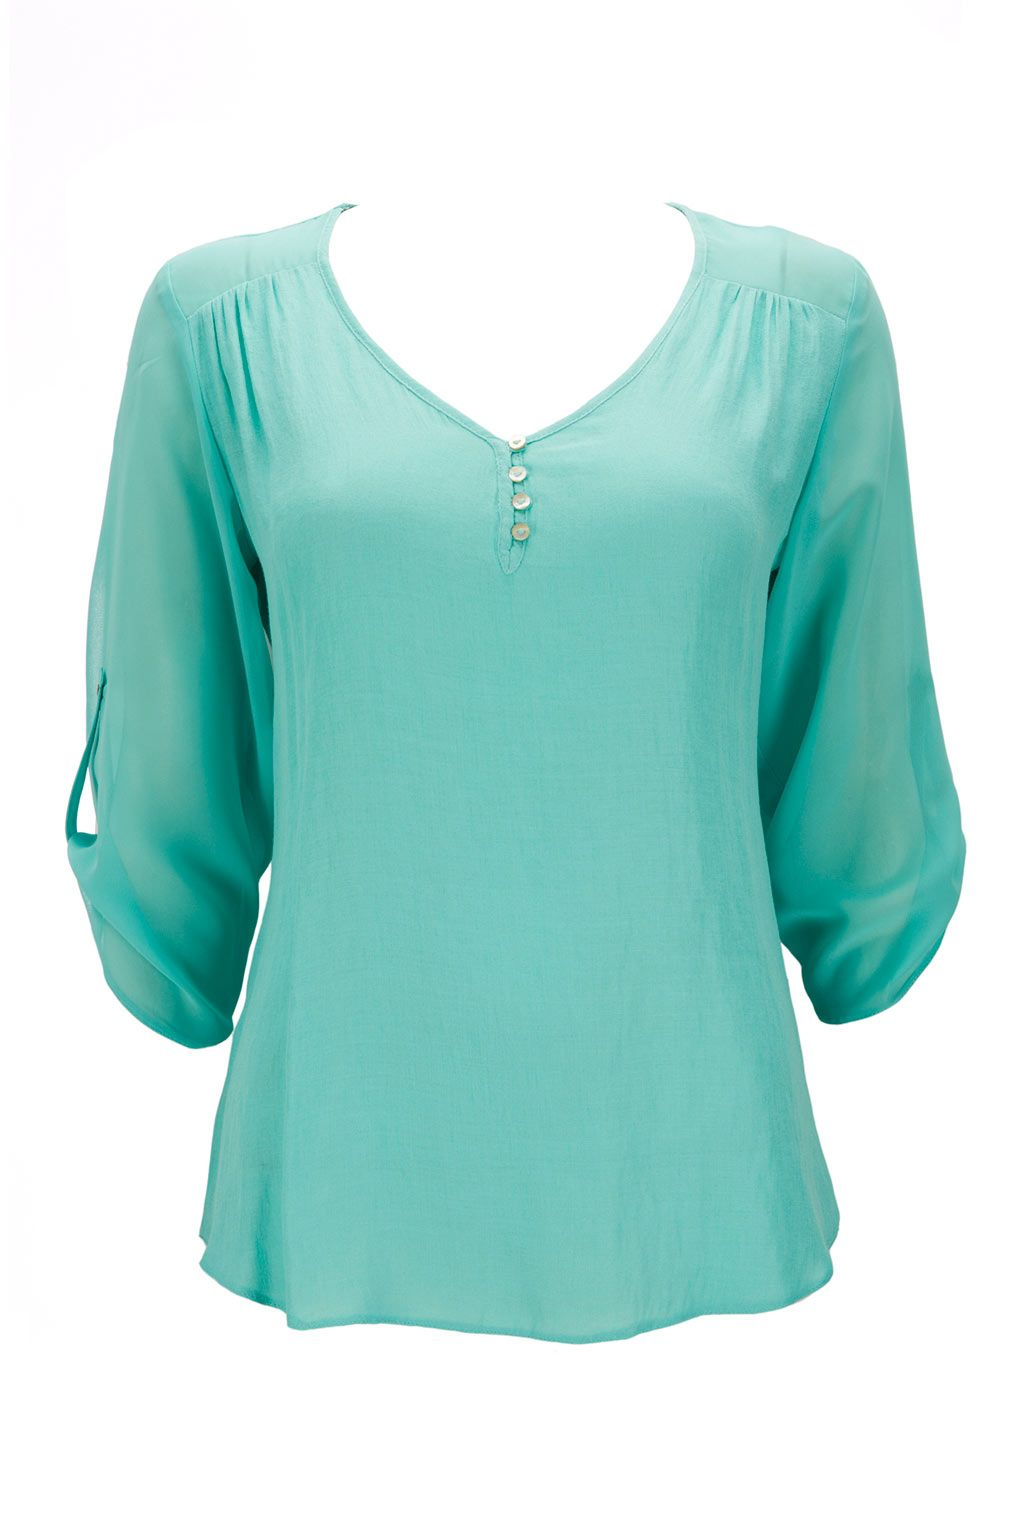 Petite Green Blouse - Up To 50% Off Selected Lines - Sale & Offers - Wallis US